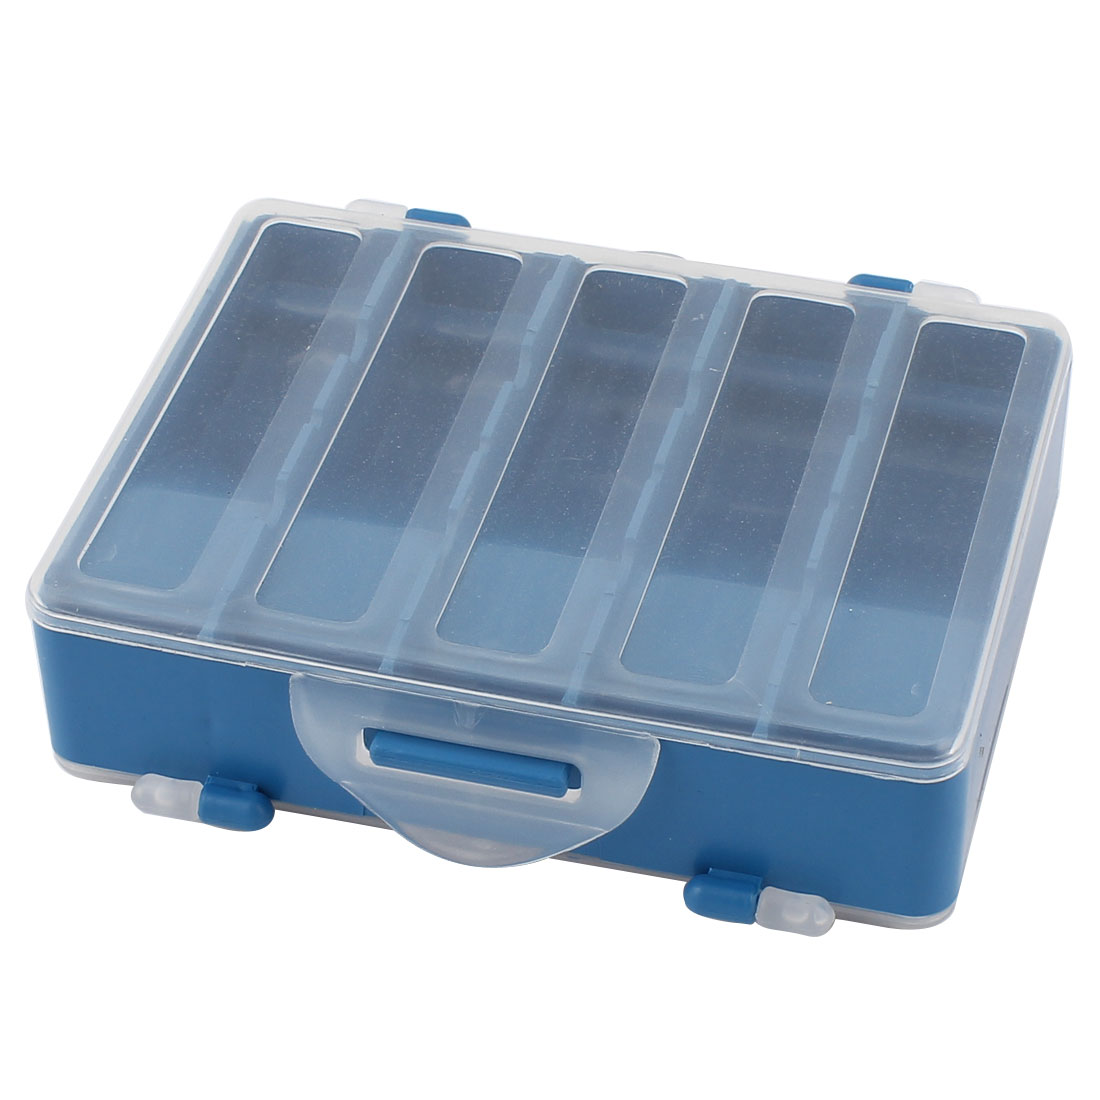 Clear Blue Plastic Dual Sides 10 Compartments Fishing Fish Lure Storage Box Case